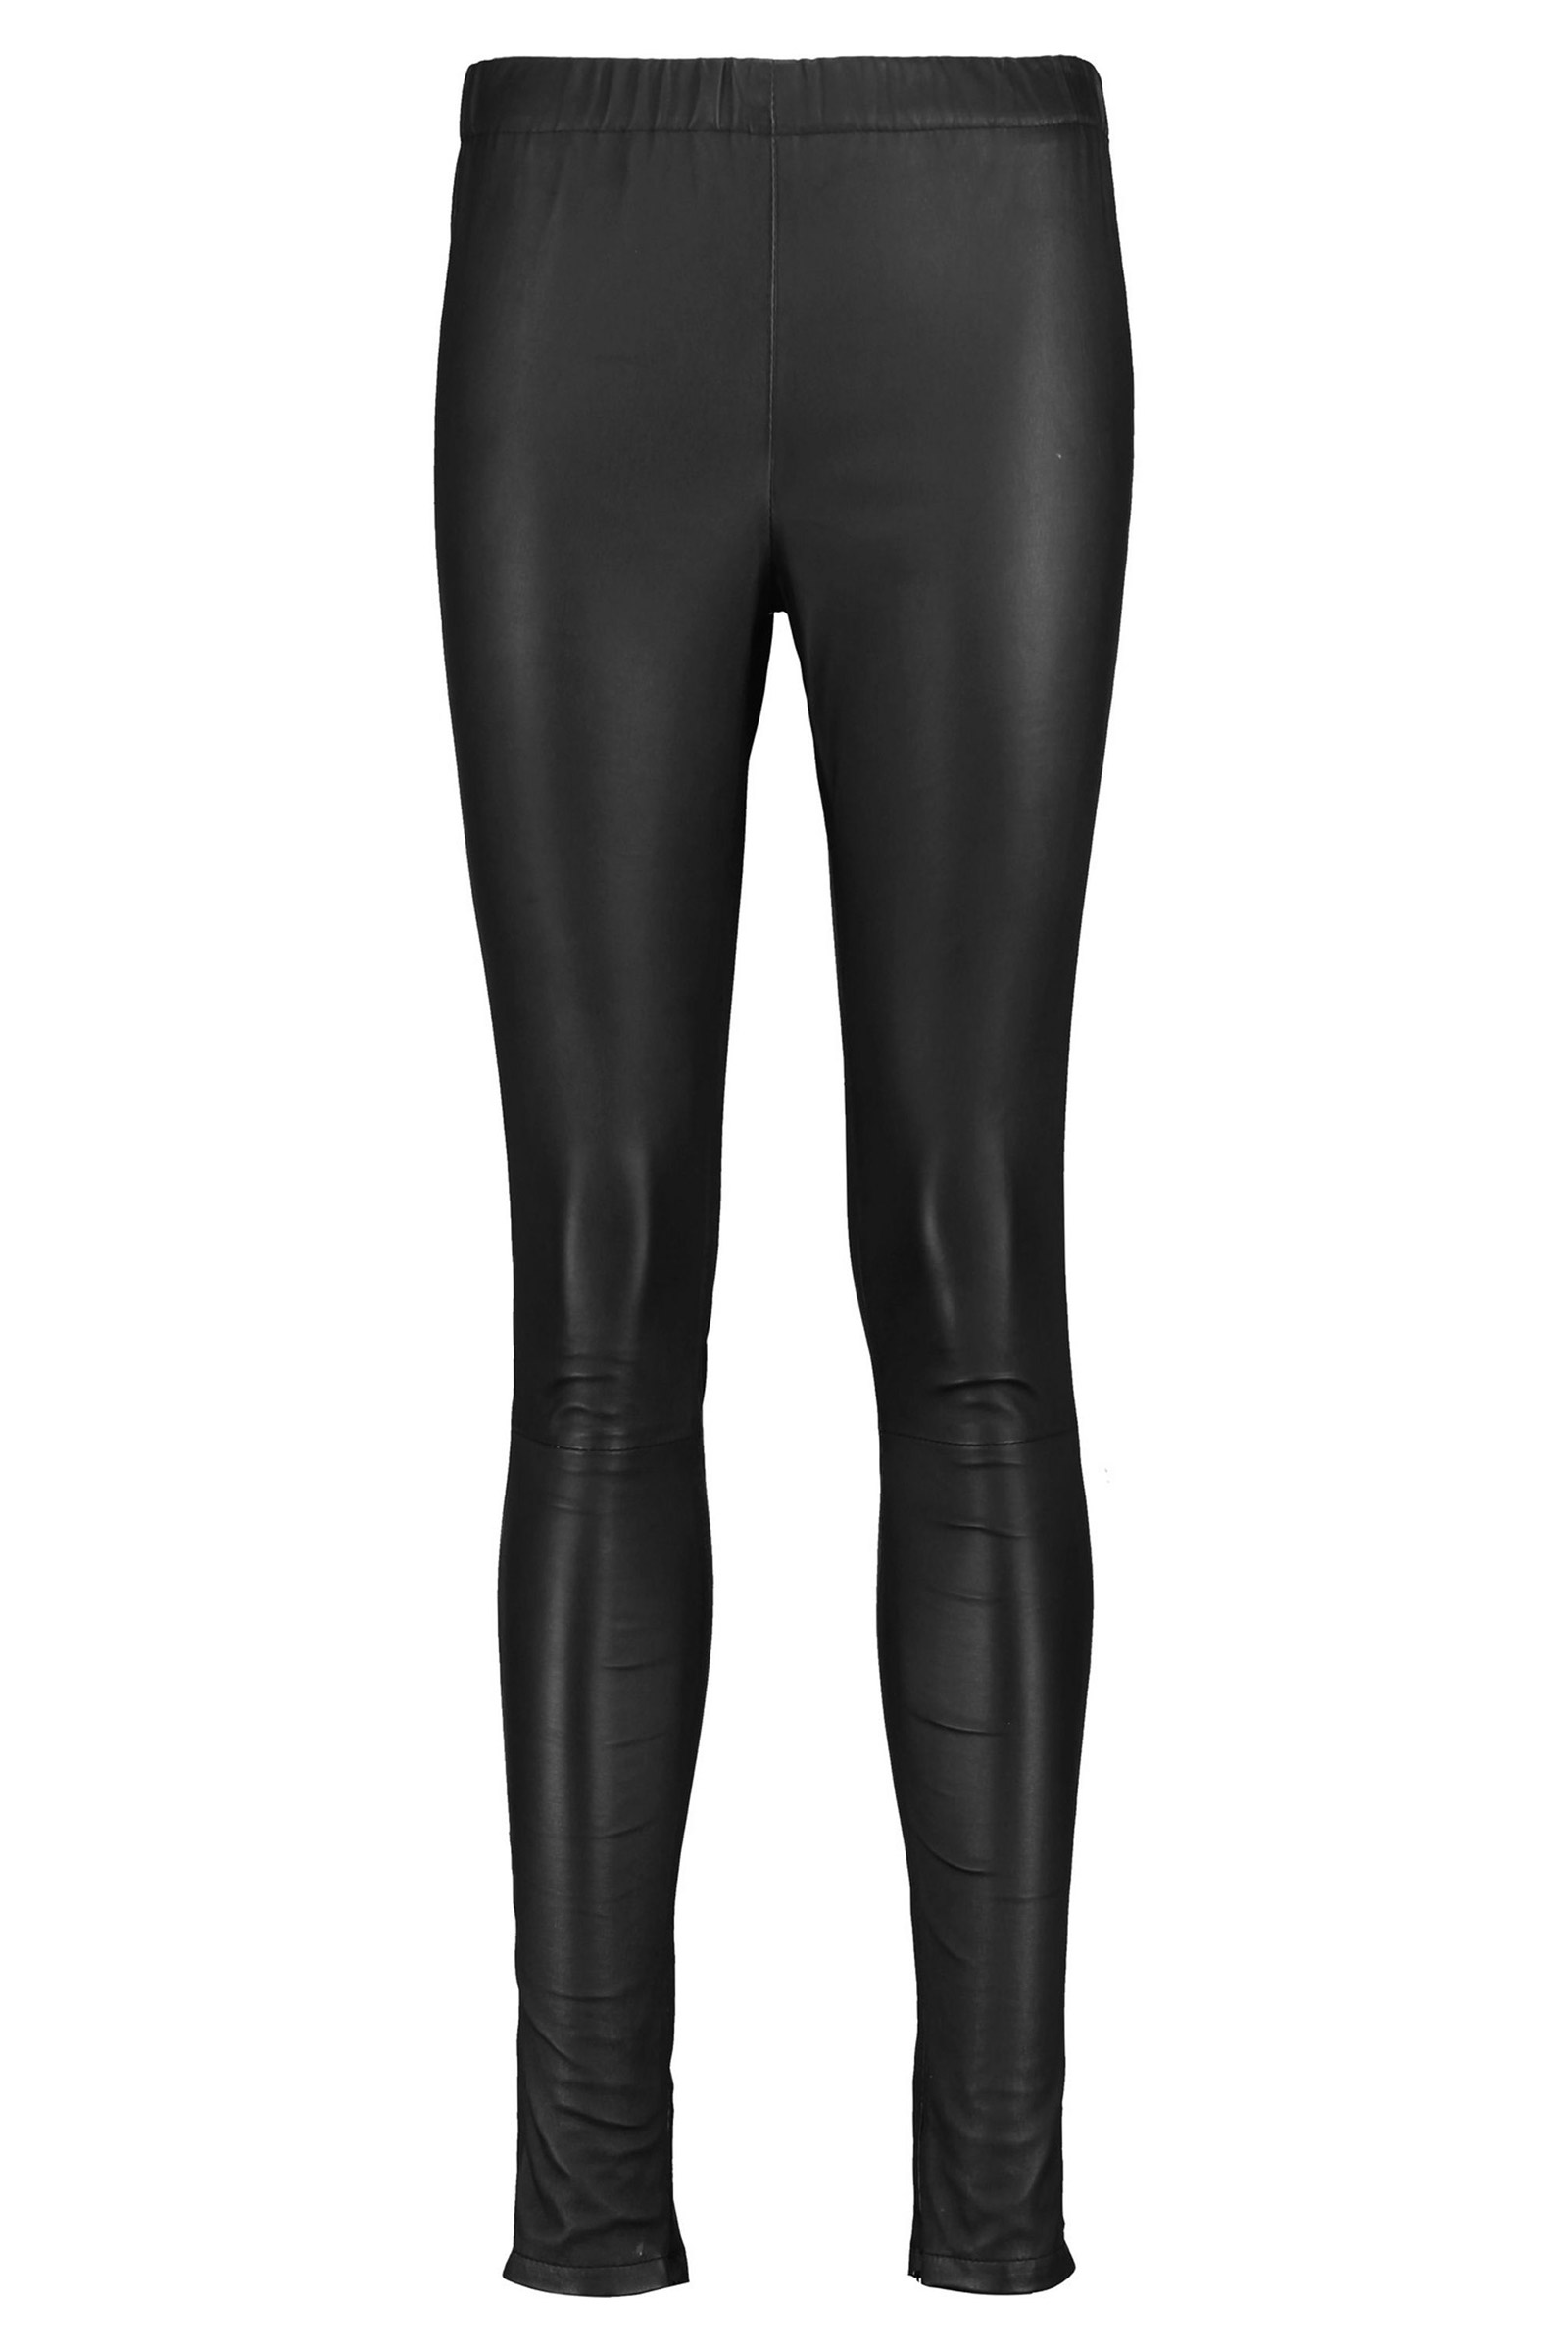 Click to Buy Iris and Ink Leather Leggings